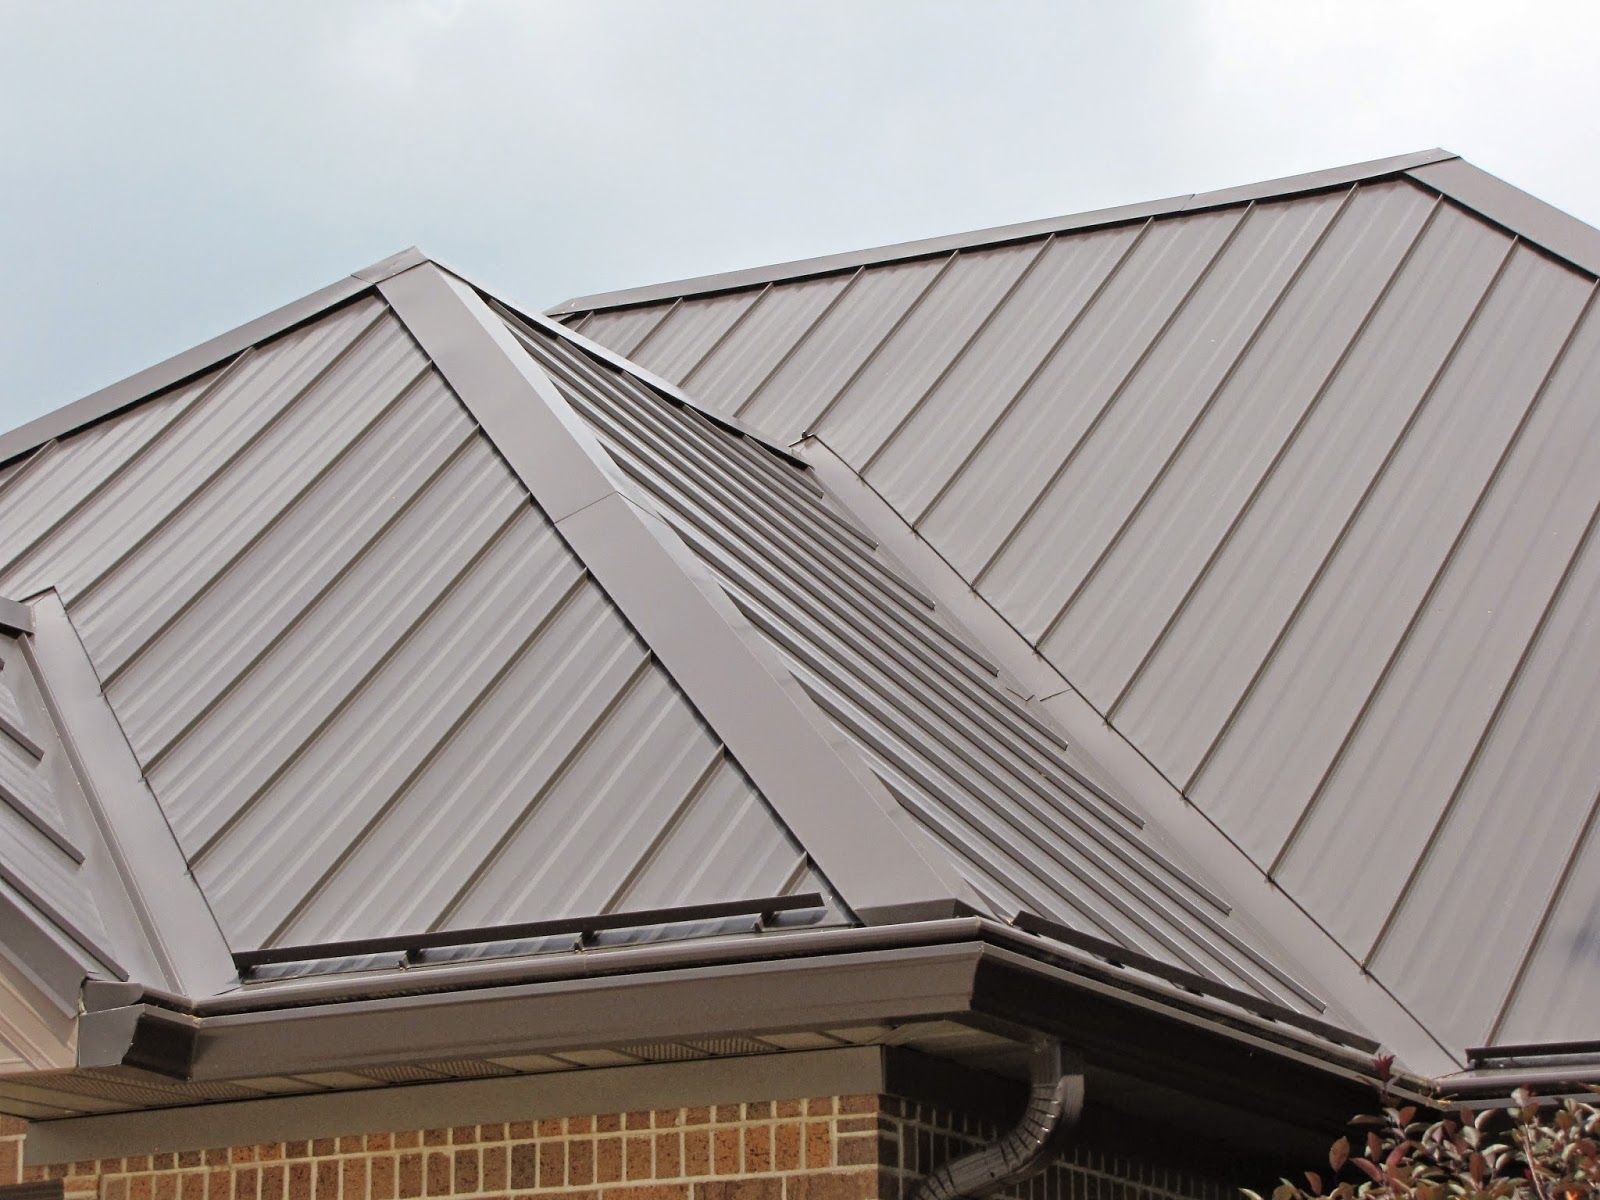 4 Nice Cool Ideas Roofing Colors Interior Flat Roofing Kitchen Roofing Styles Balconies Roofing Shingles With B Roof Architecture Roofing Metal Roofing Prices